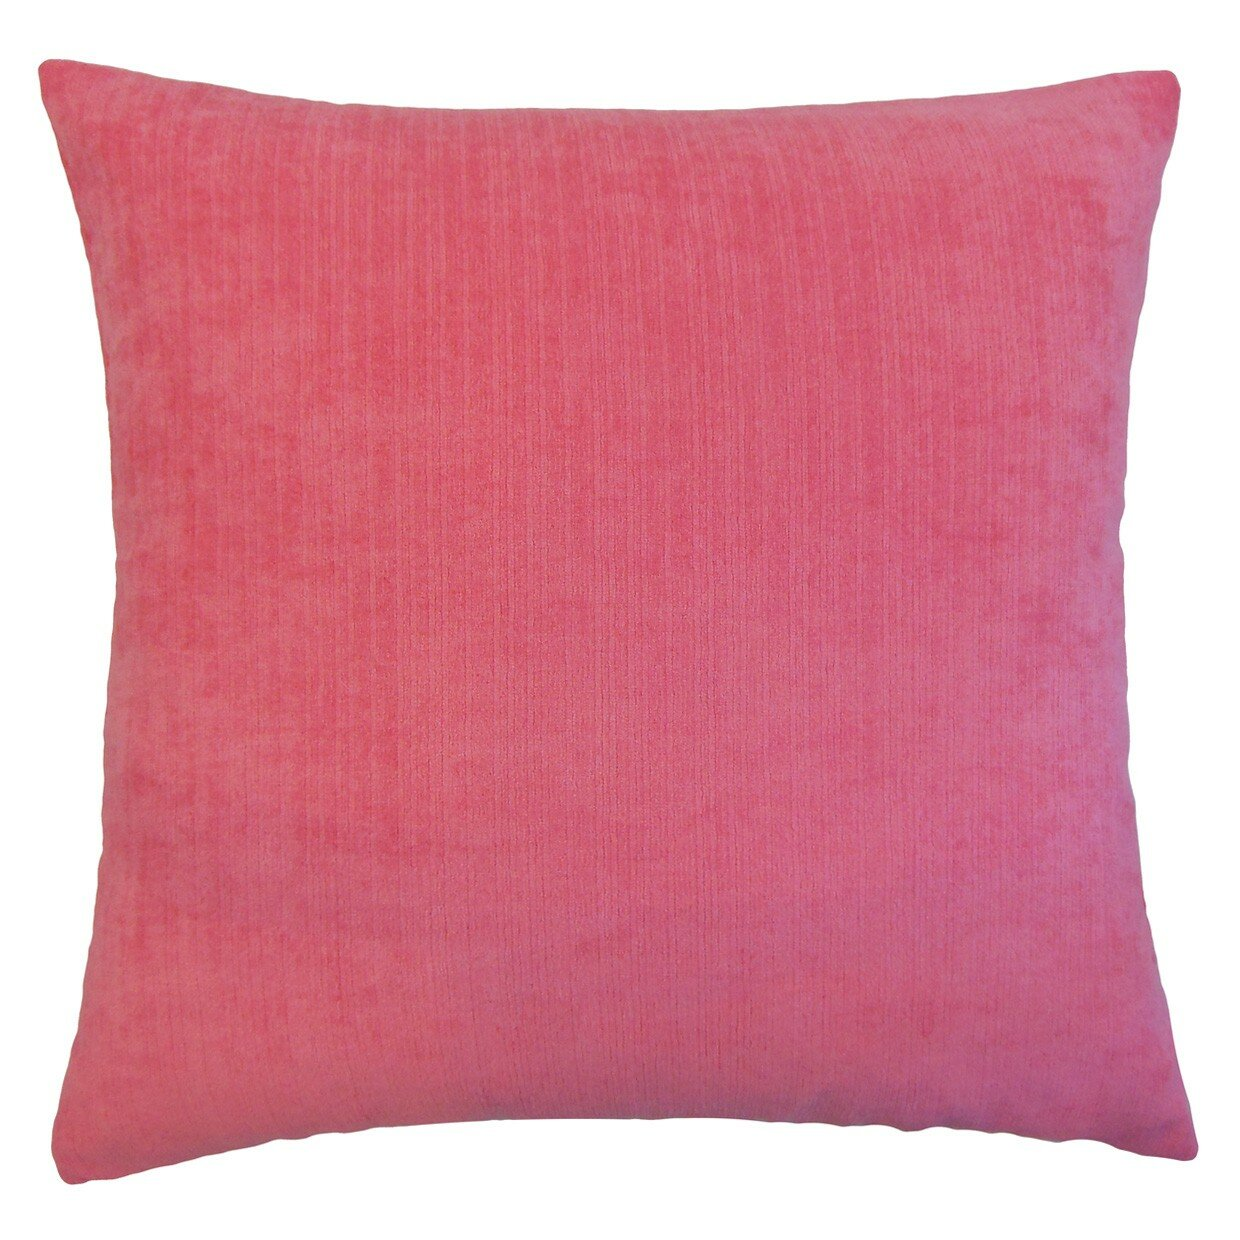 Decorative Pillow Wayfair : The Pillow Collection Rafiya Outdoor Throw Pillow Wayfair